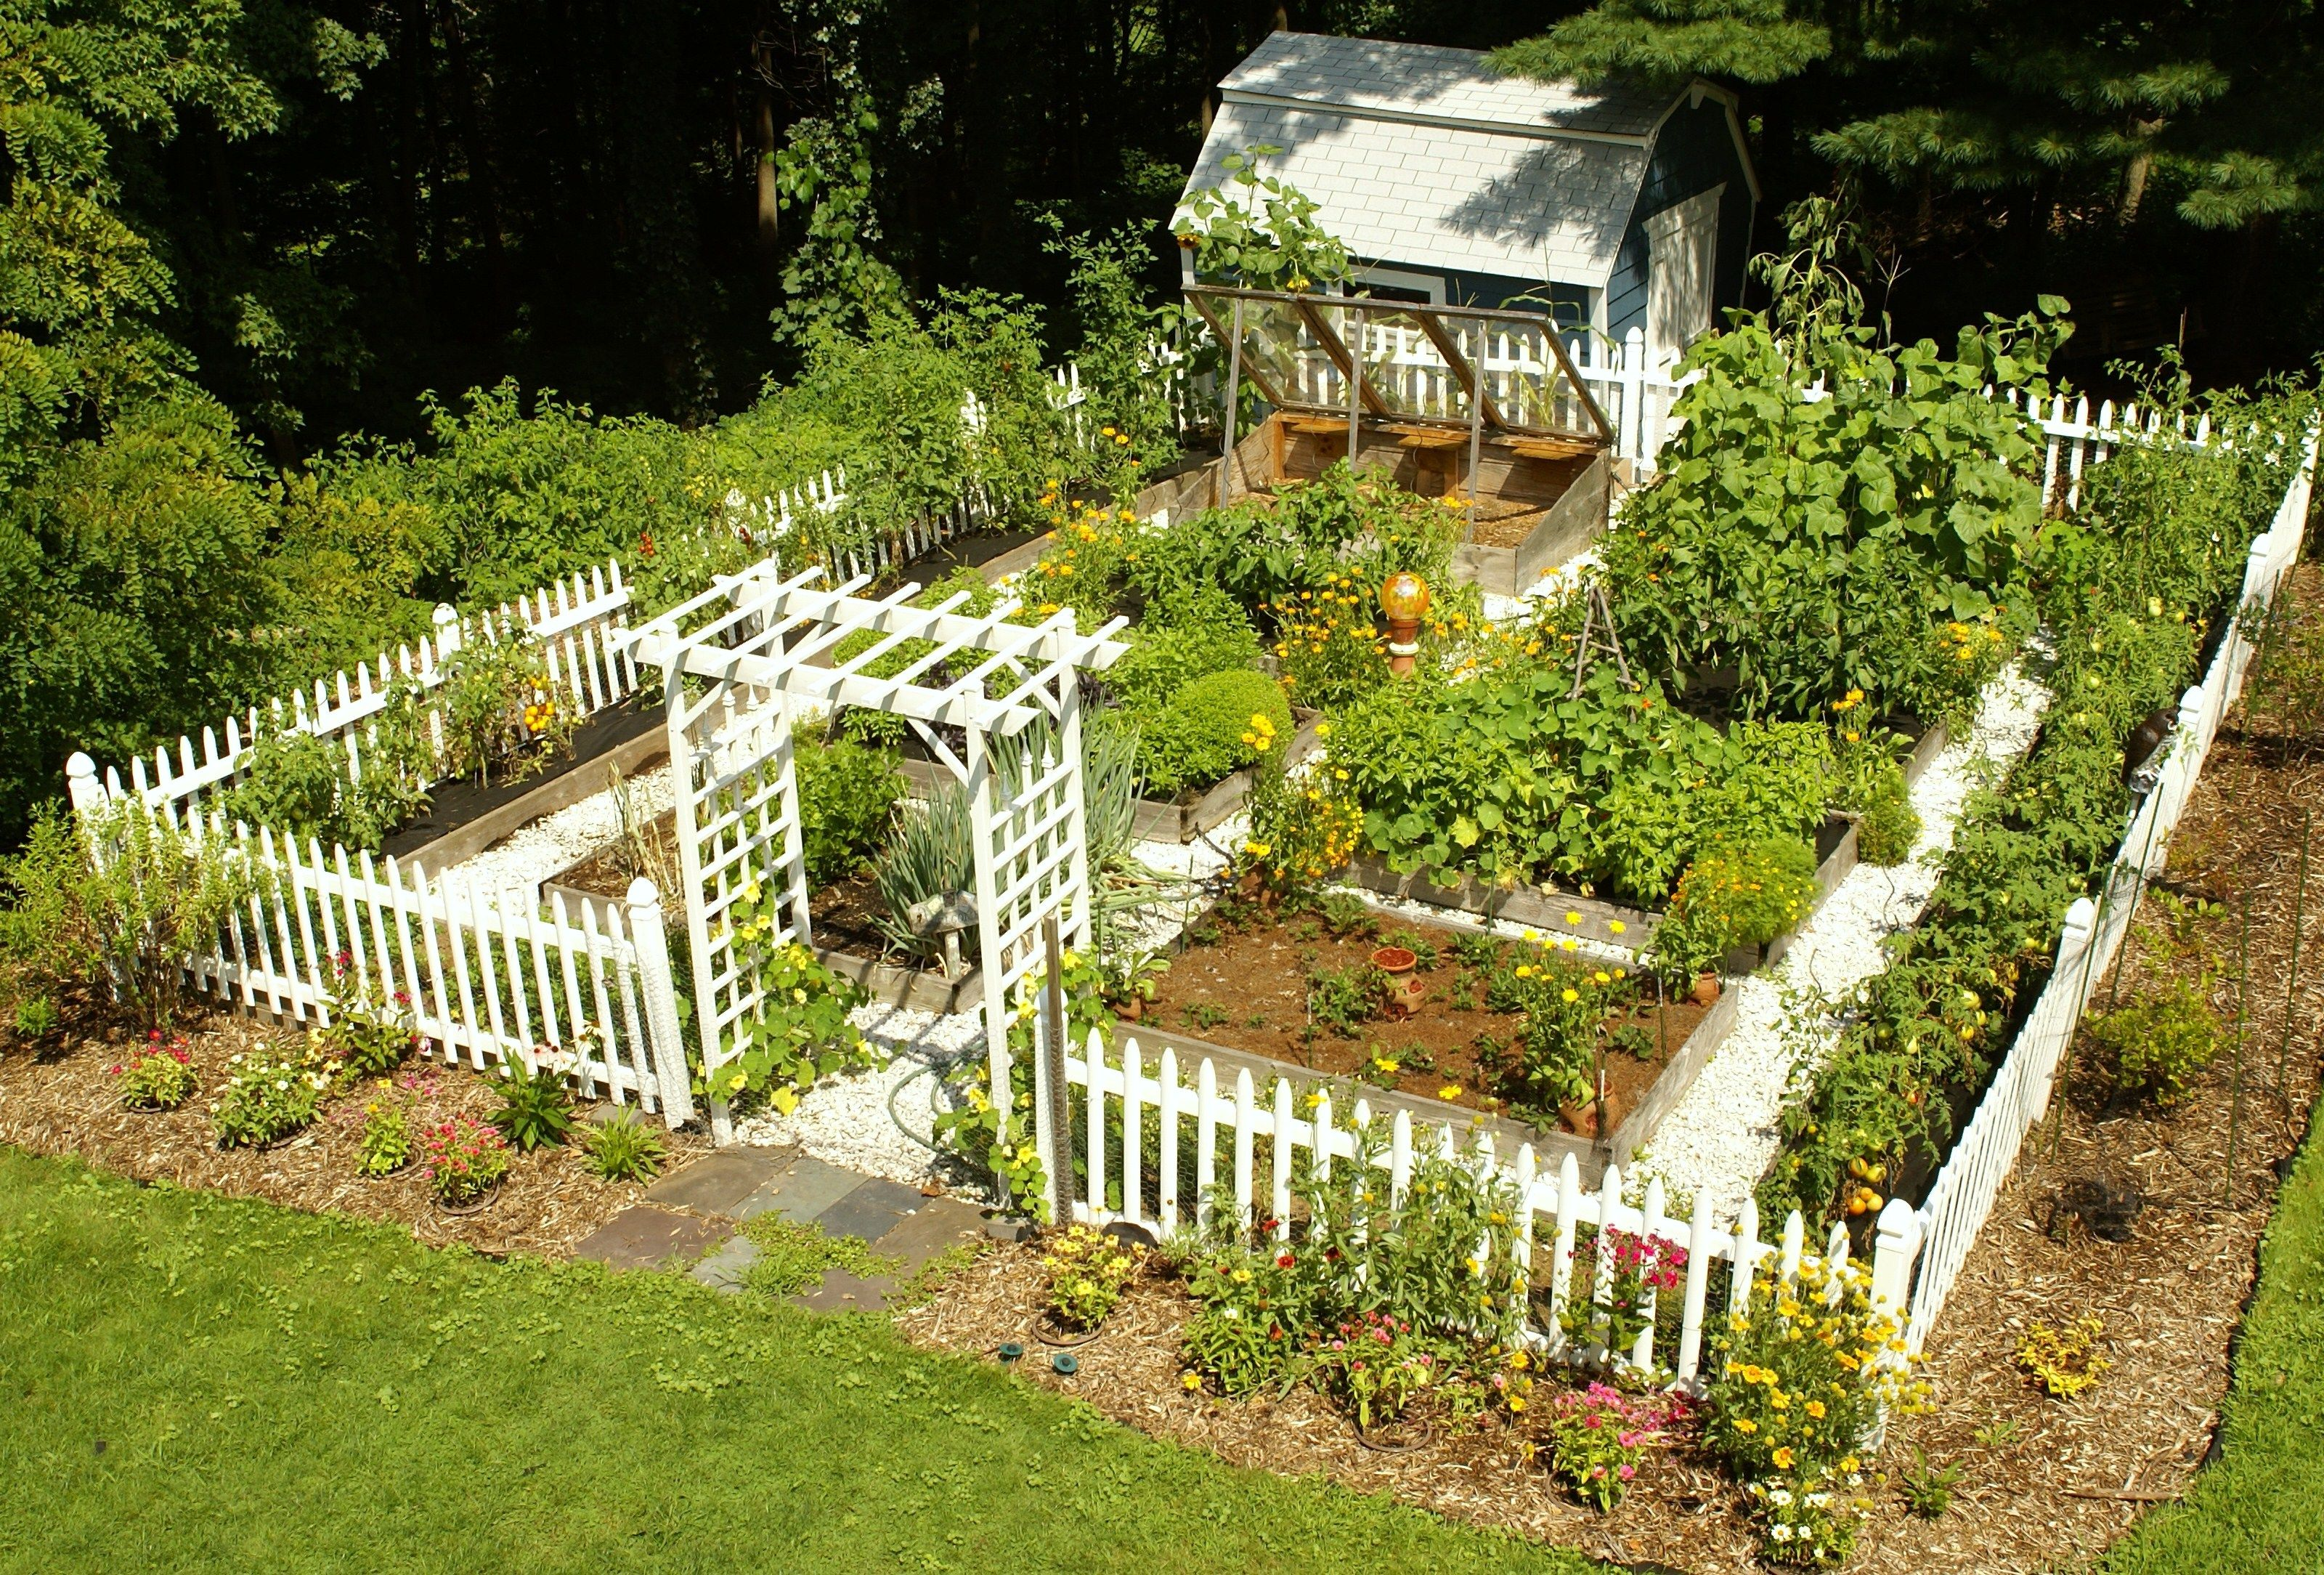 Pinterest vegetable gardening ideas - Dreams In A Container Vegetable Garden